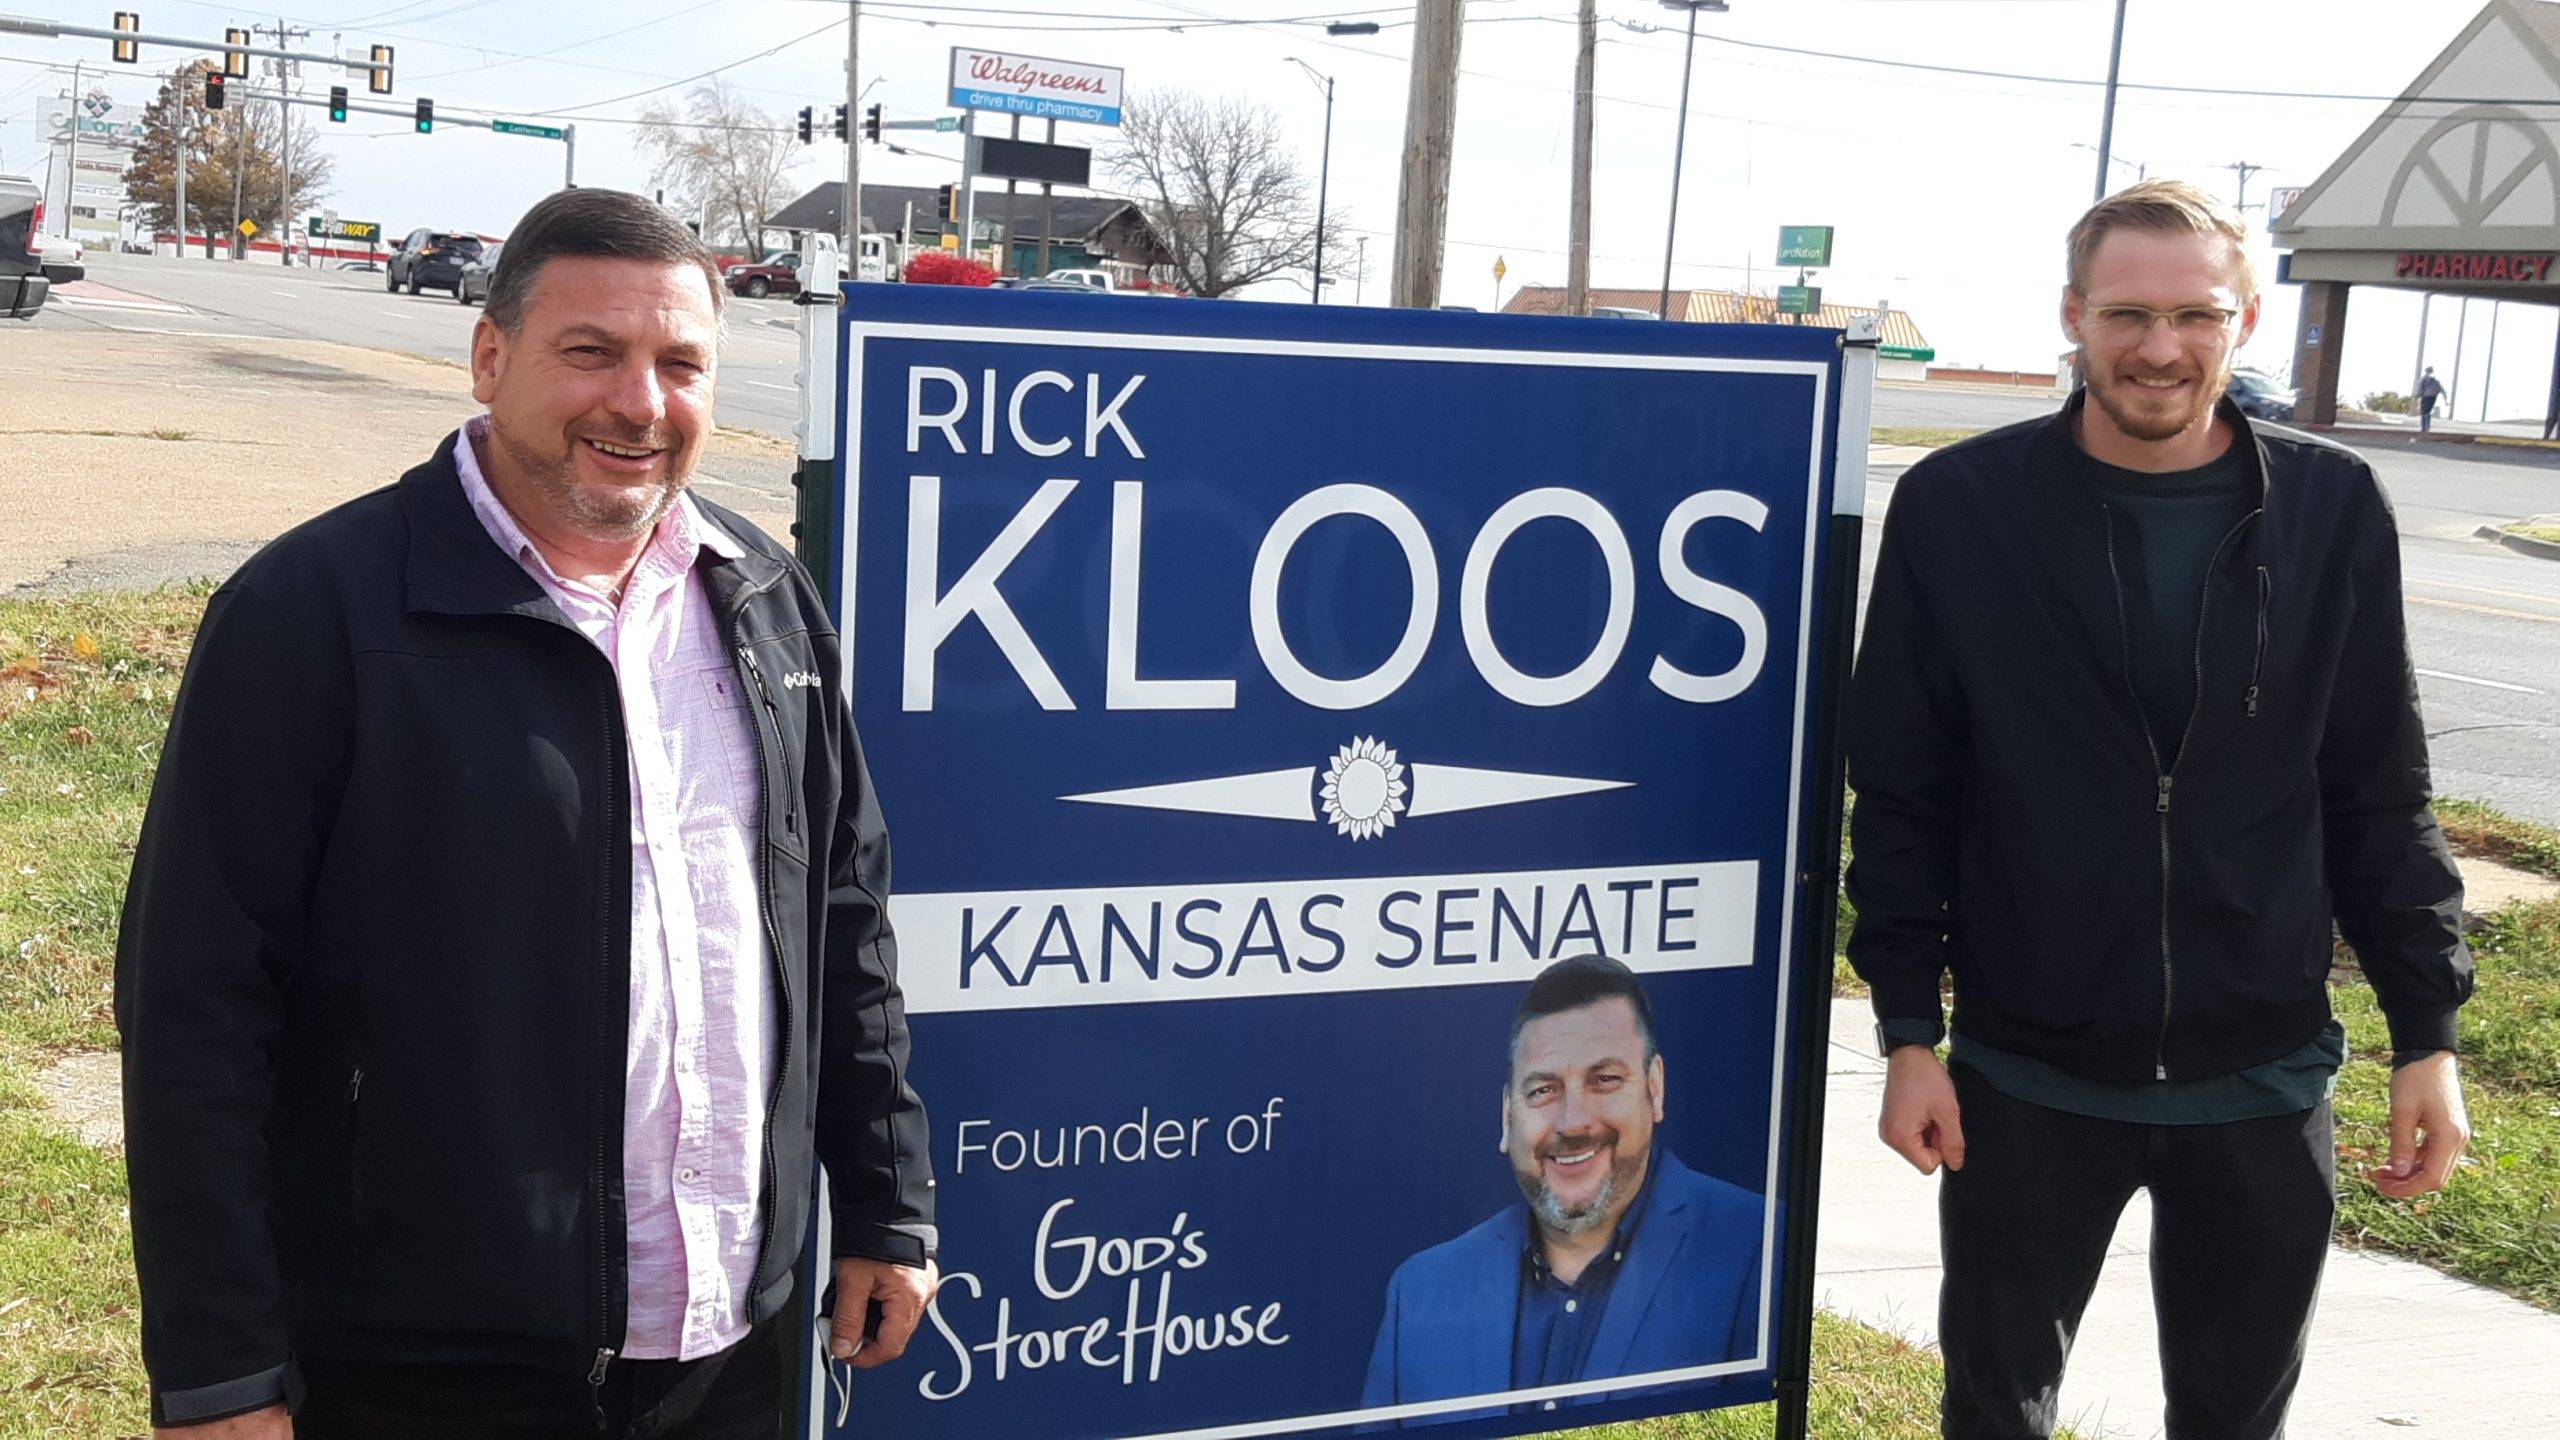 Kloos' ill-fated campaign for governor guides shocking Senate run against icon Hensley